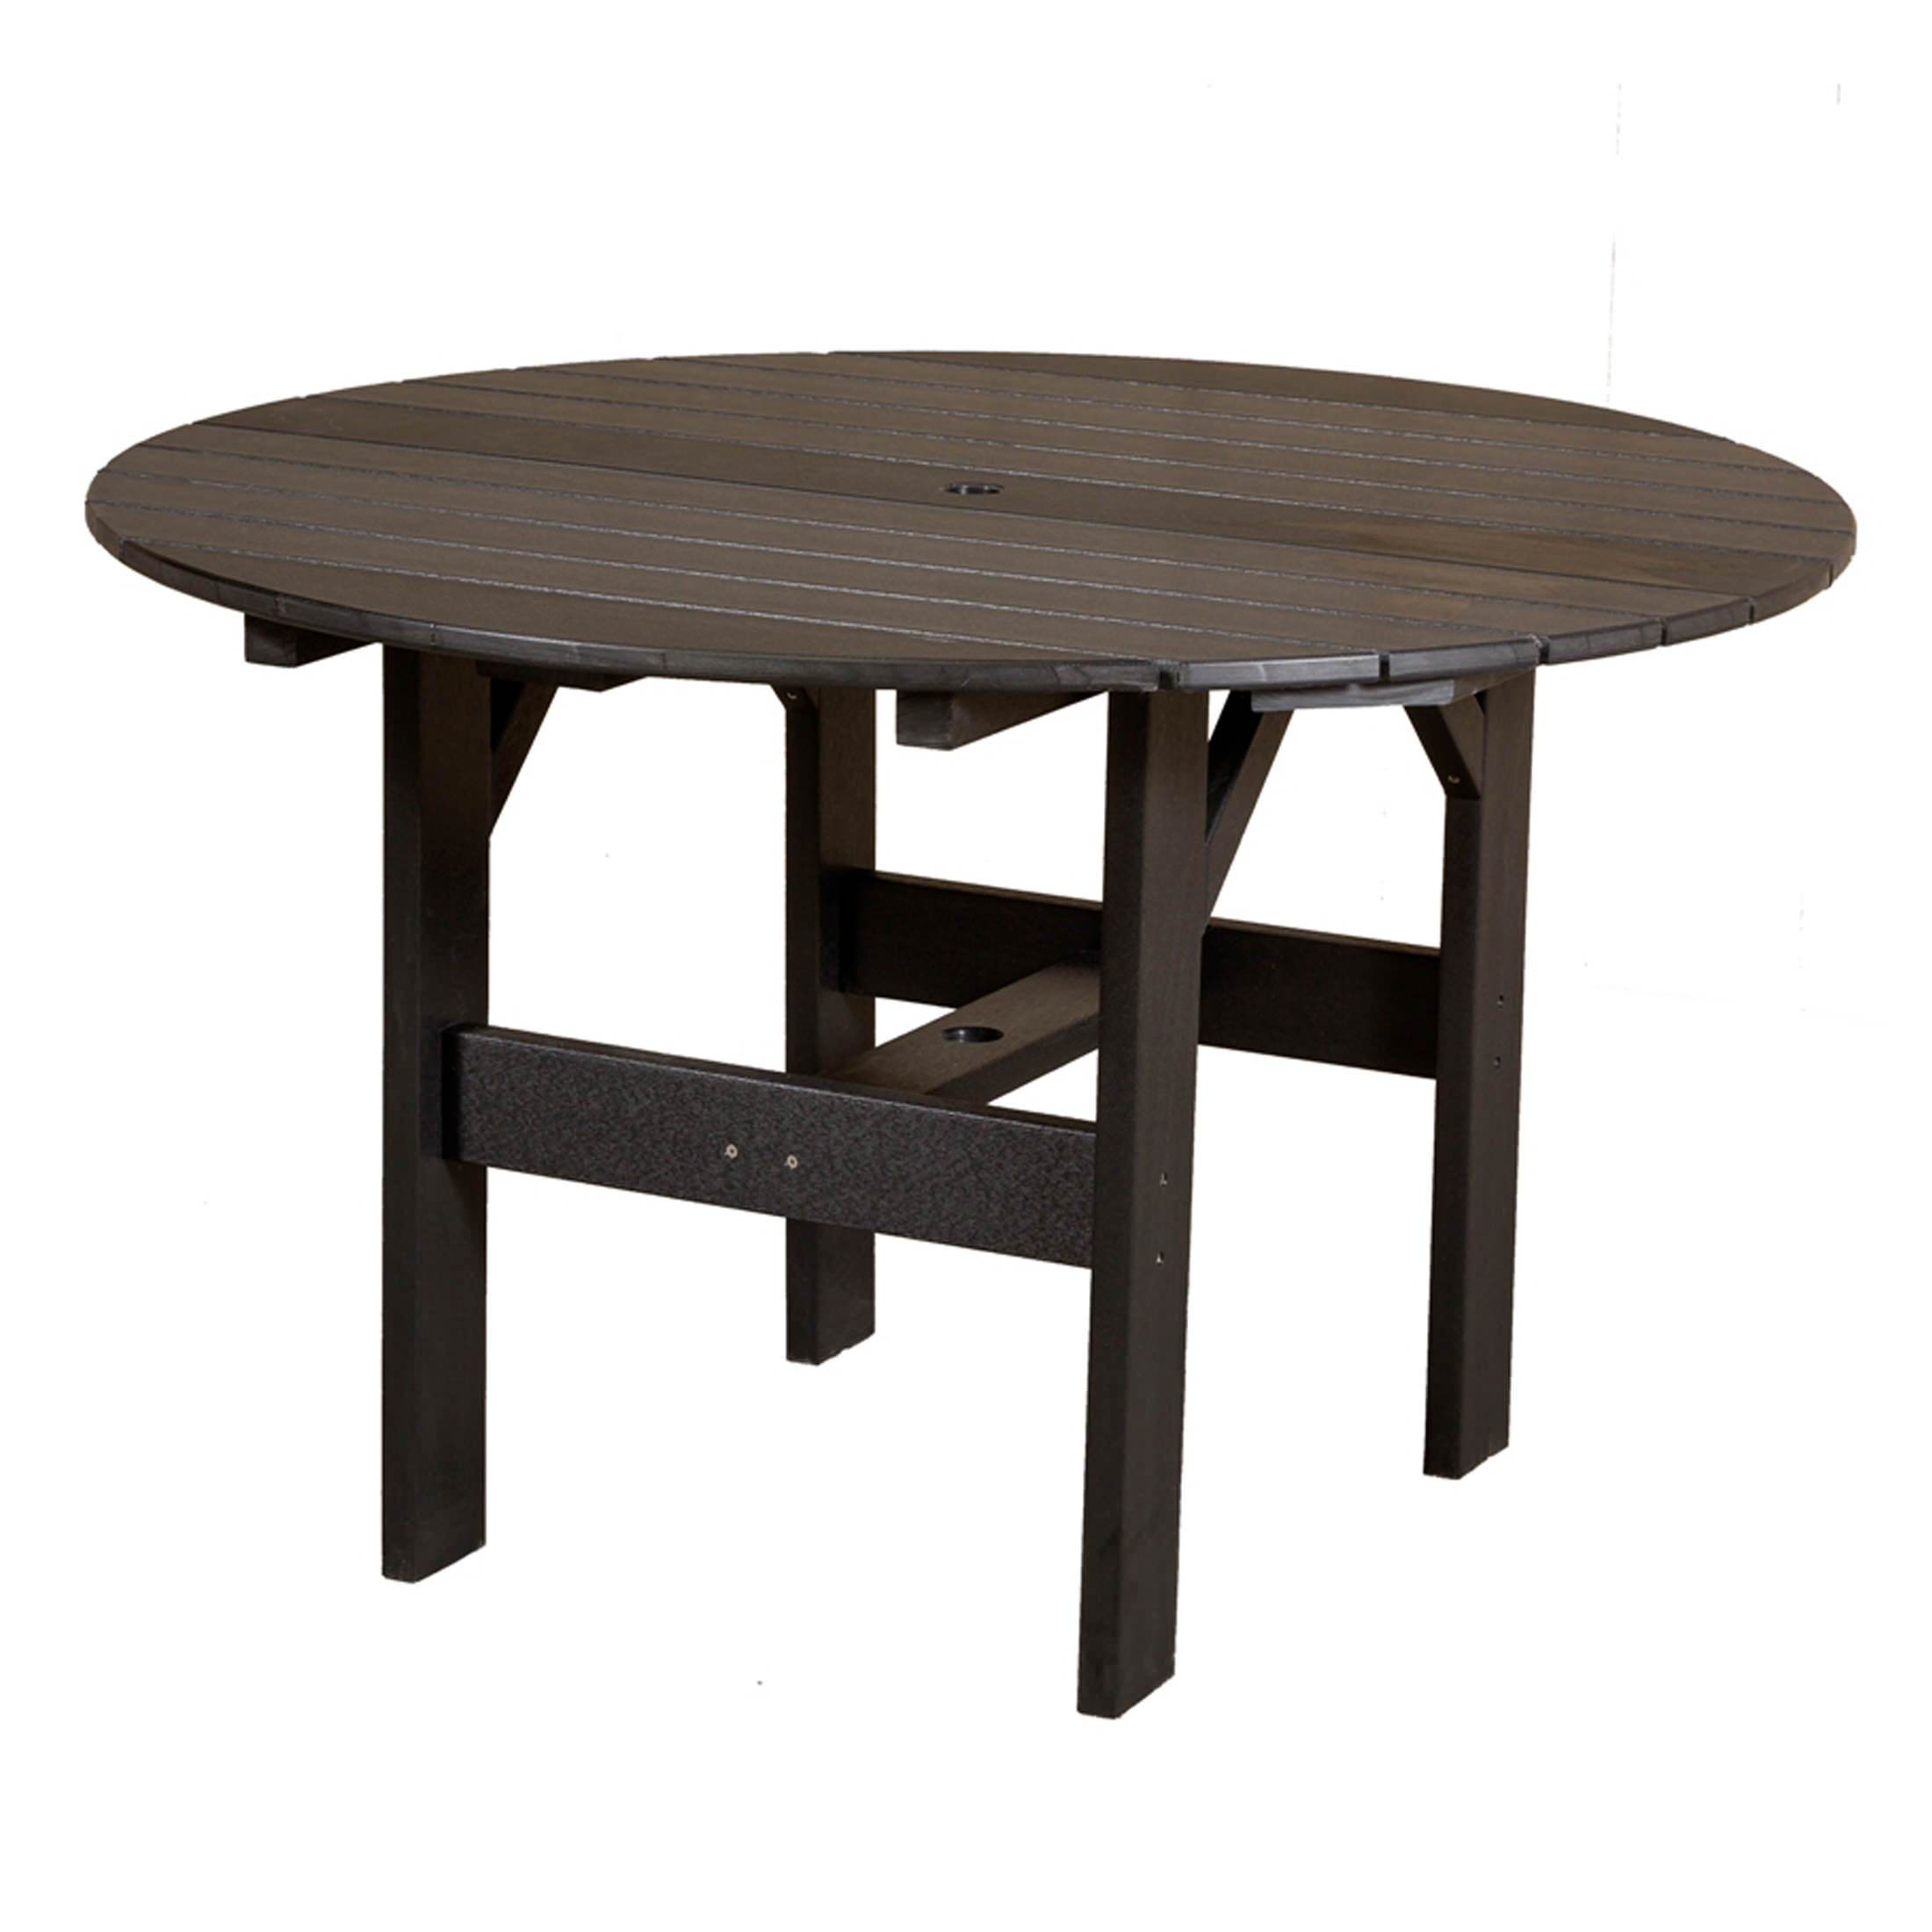 Little Cottage Classic Round Table 46 in